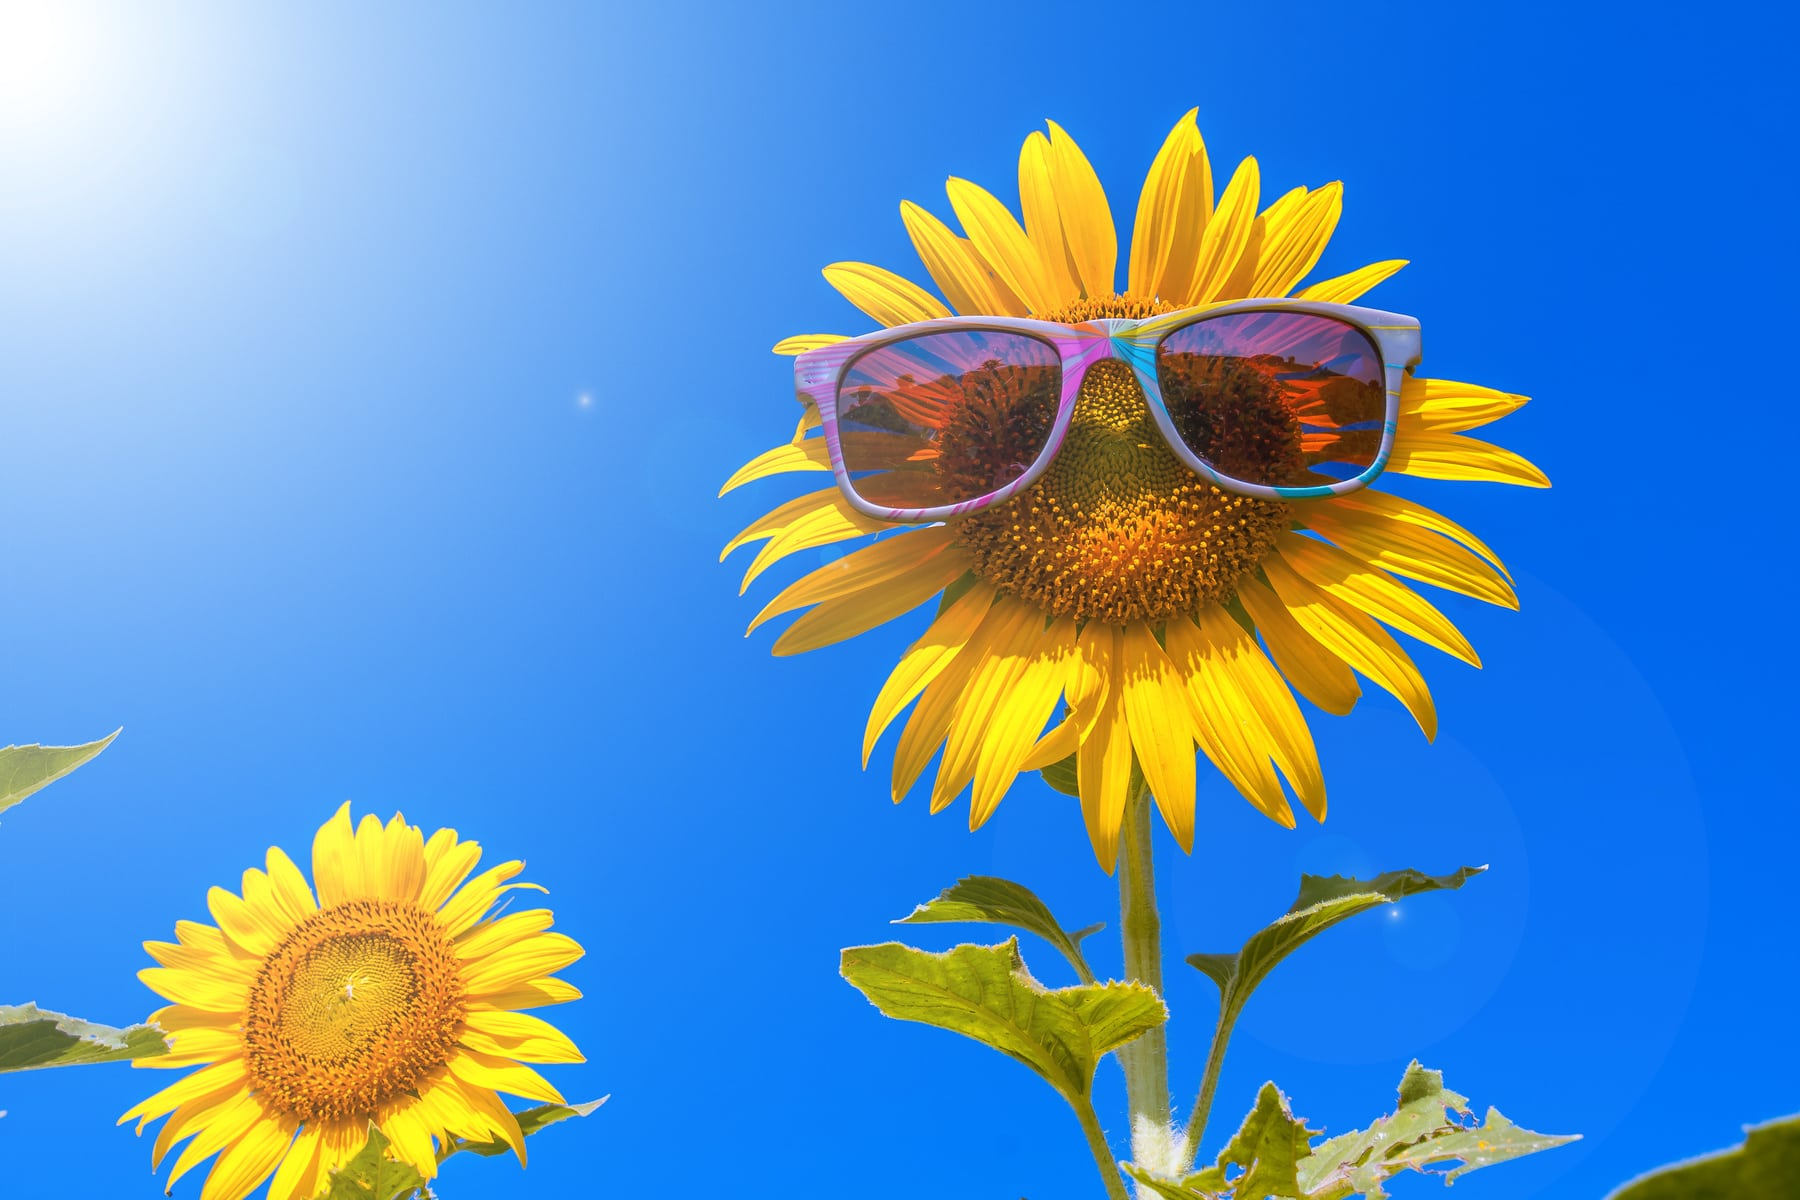 happy sunflower on day noon with blue sky abstract background to happiness of nature.